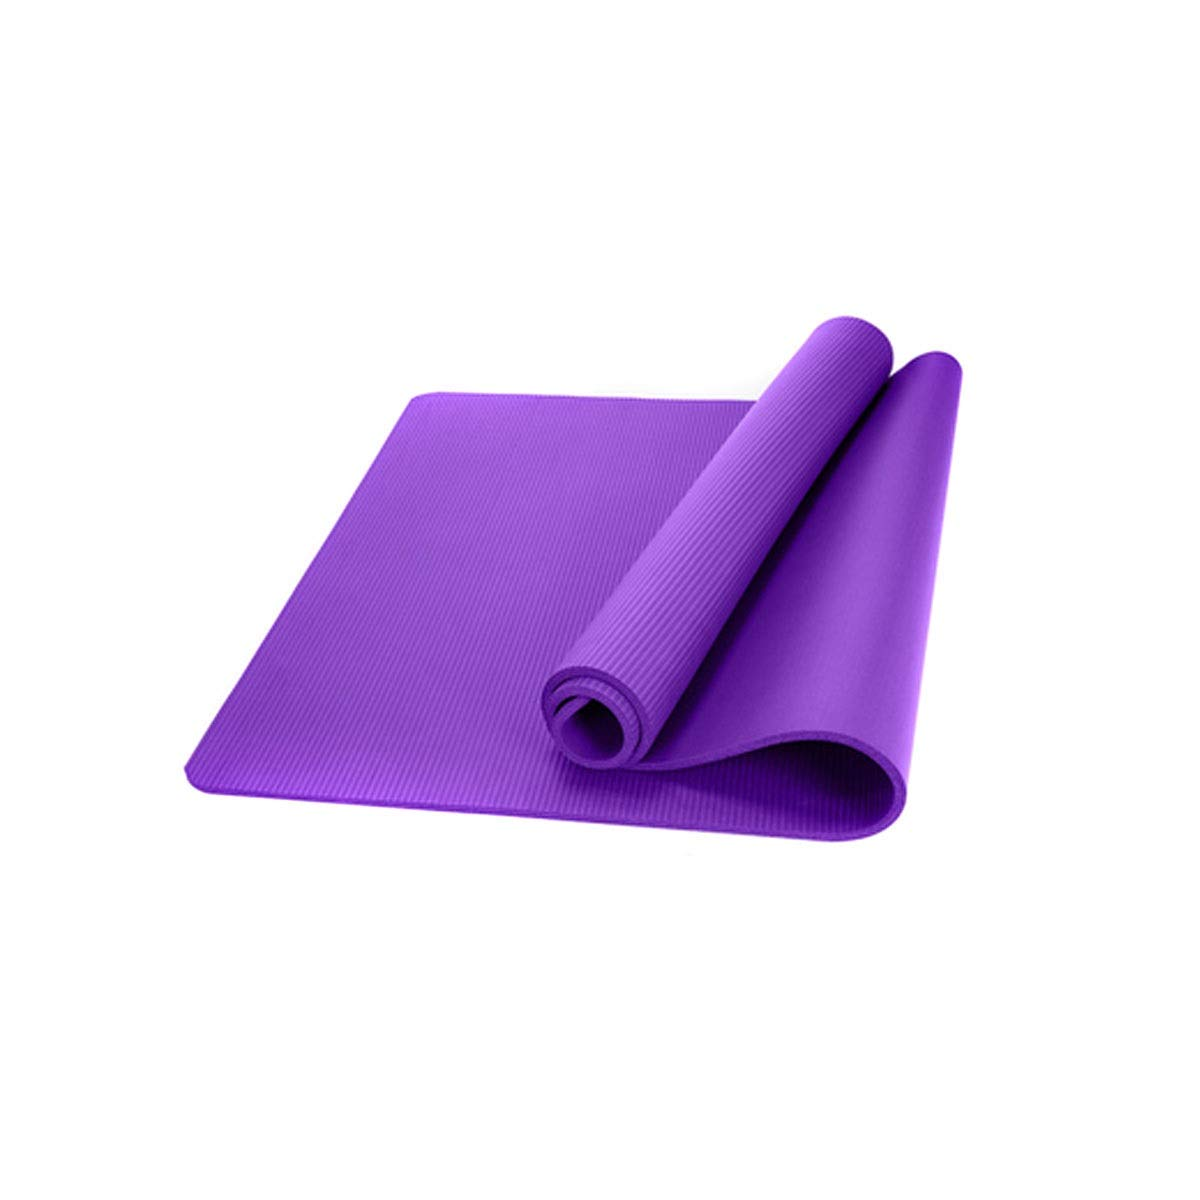 Purple Edition115mm Youshangshipin Yoga Mat, A Yoga Mat for Beginners, A Variety of Gifts, Affordable, Gift (24.4 Inches, Thickness 10 Mm, 15 Mm, Pink, Purple) Painless